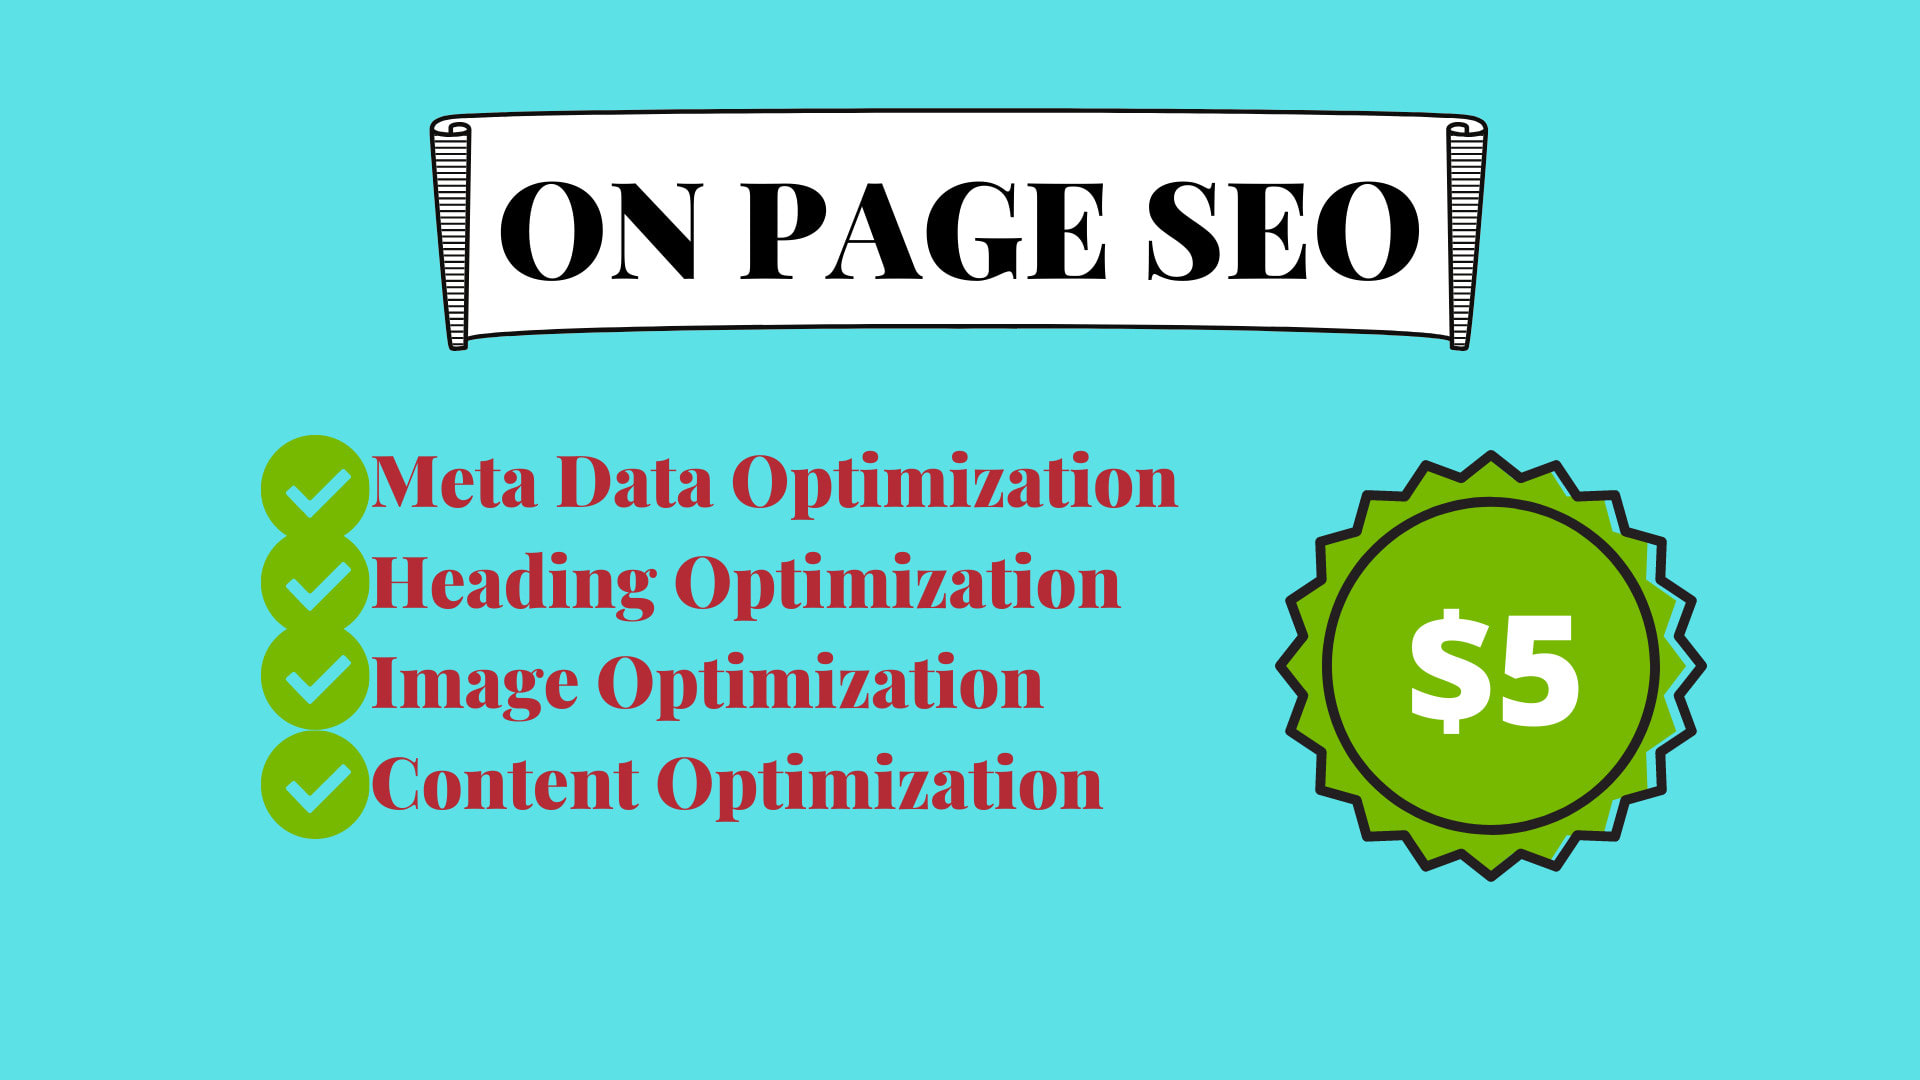 I will do on page SEO optimization